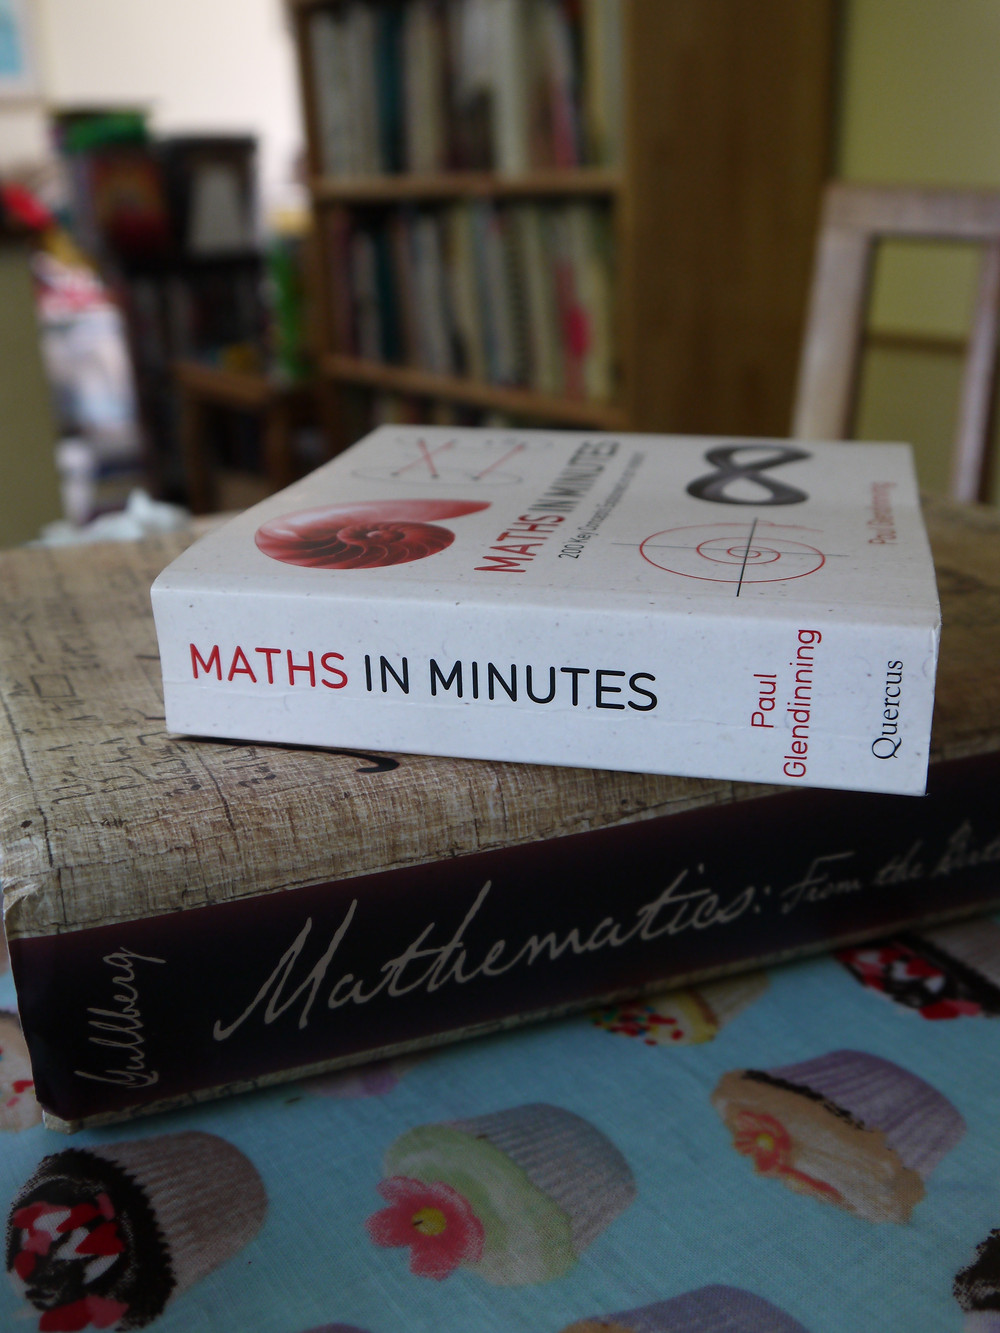 Two maths non-fiction books and a bookshelf